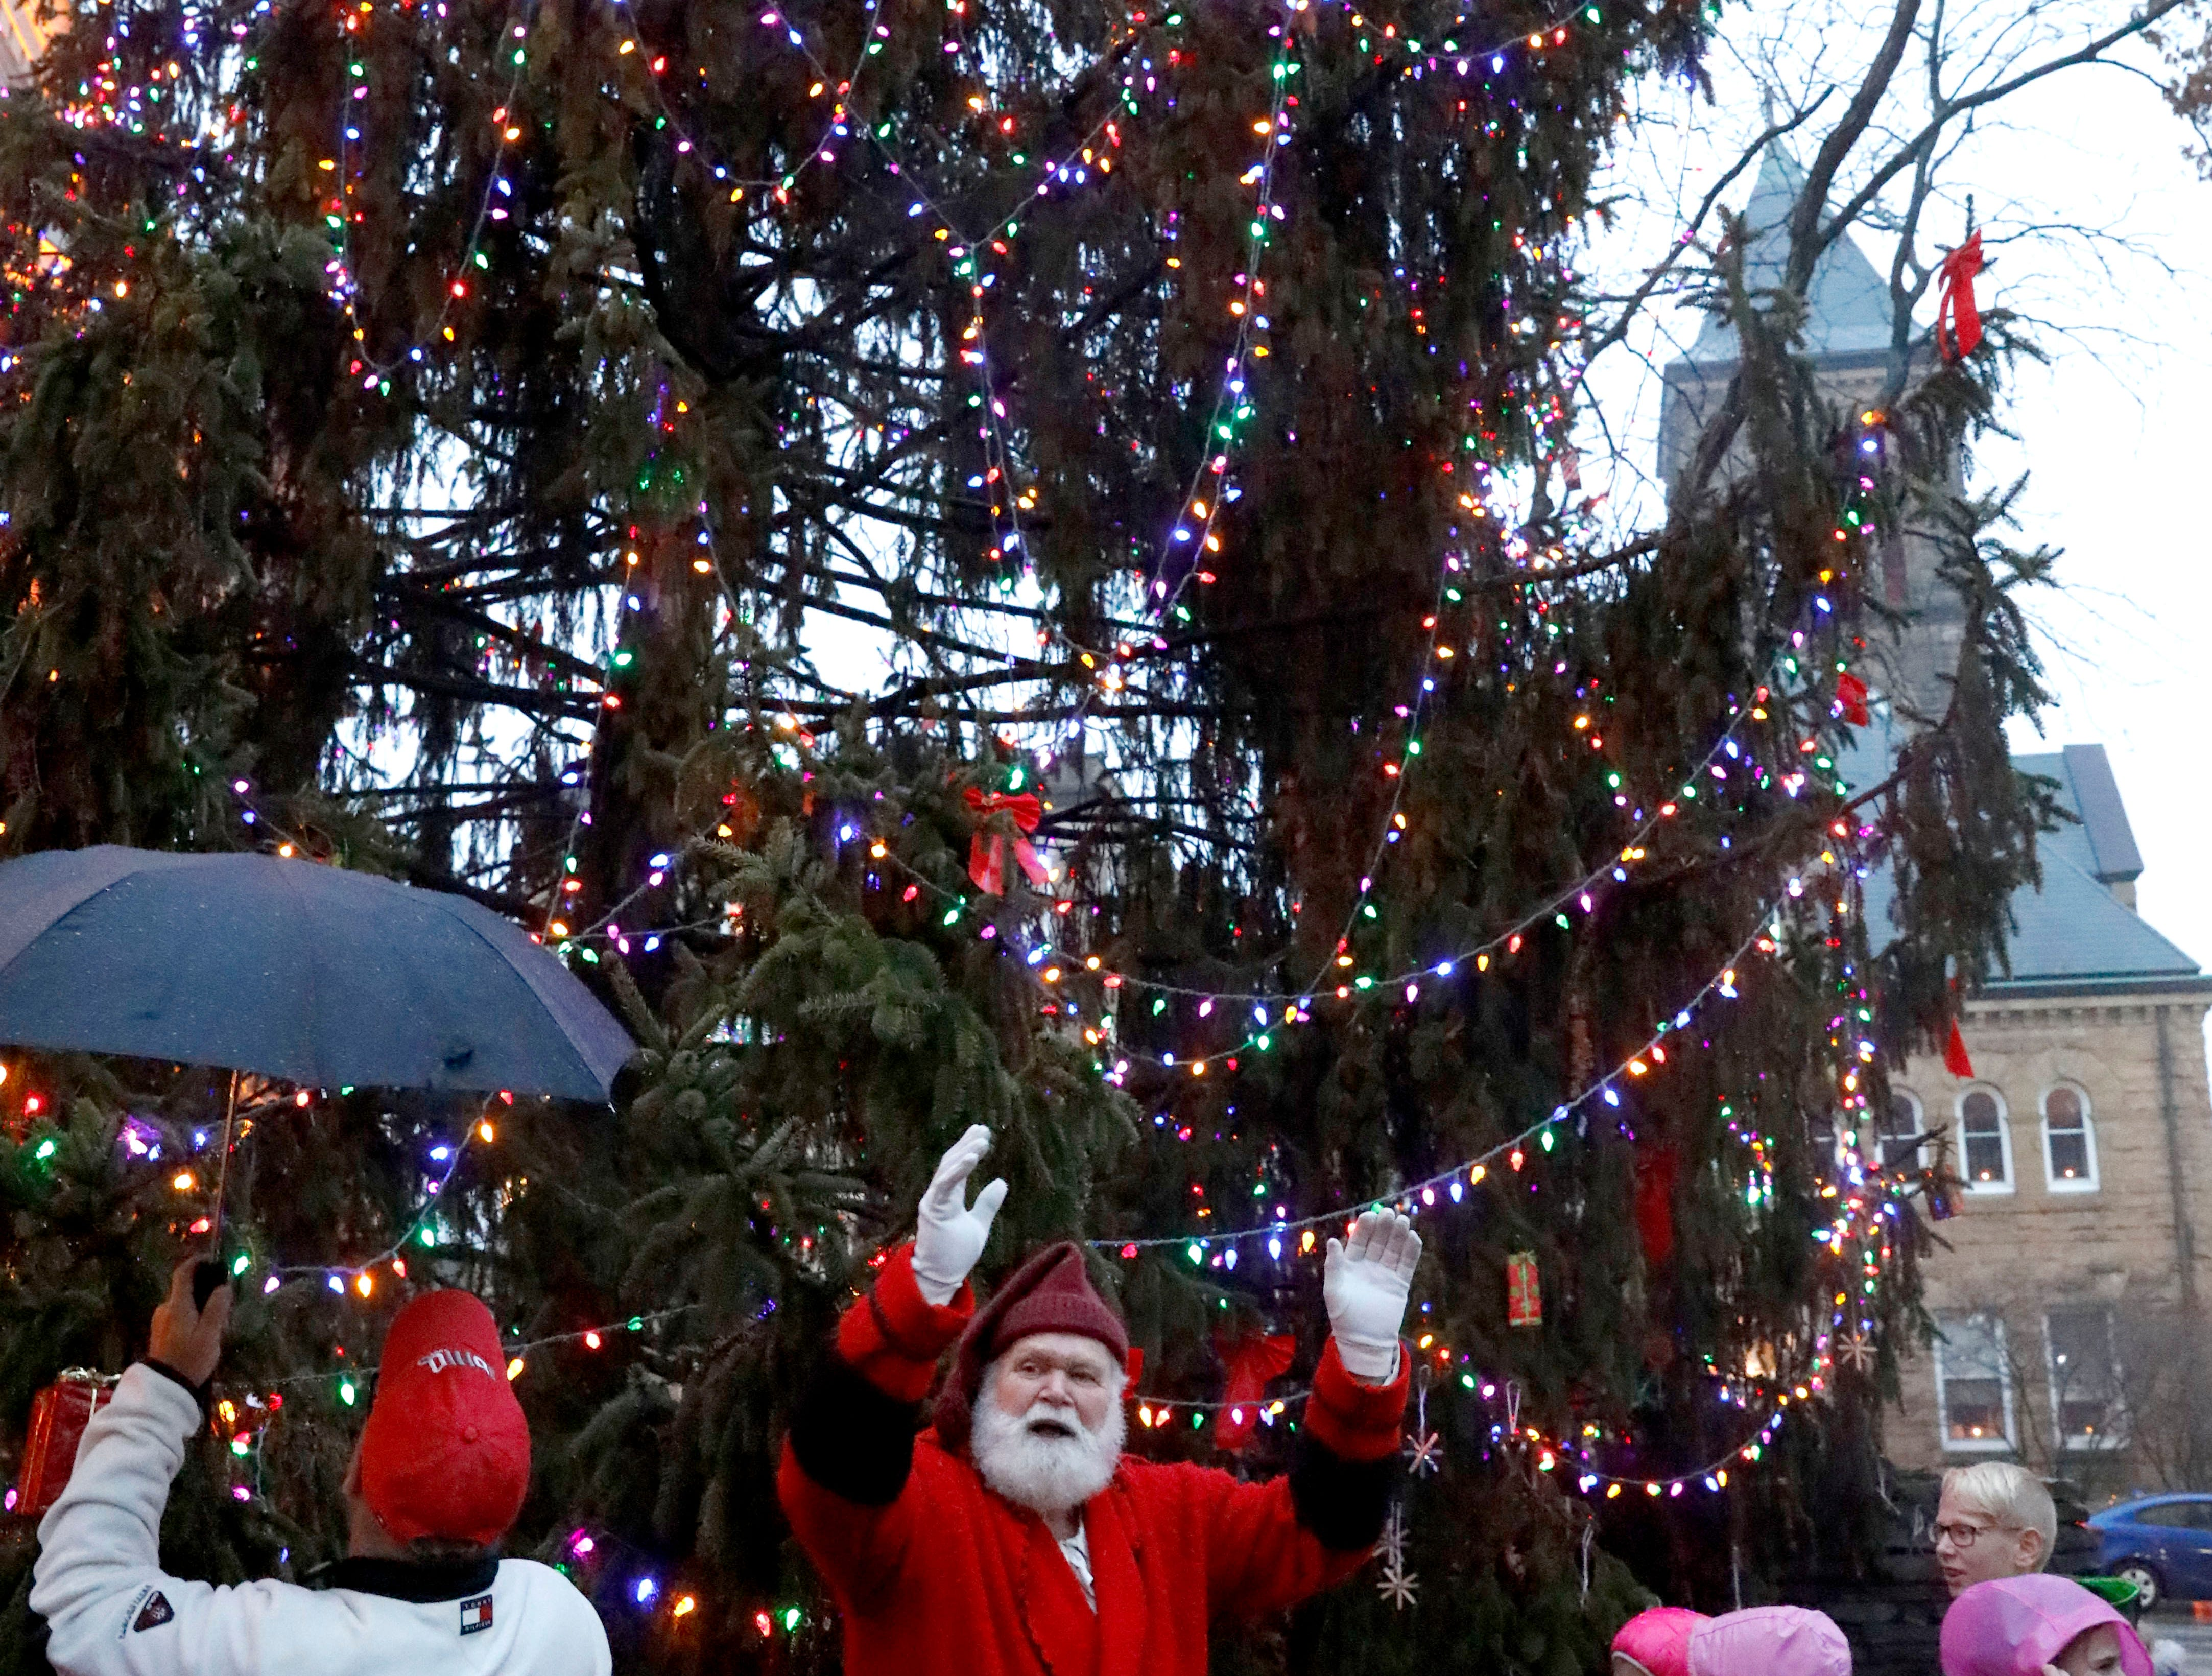 Santa Claus celebrates as the downtown Christmas tree lights up Saturday night, Dec. 1, 2018, in Lancaster. The tree lighting ceremony capped off the annual Winterfest in downtown Lancaster.